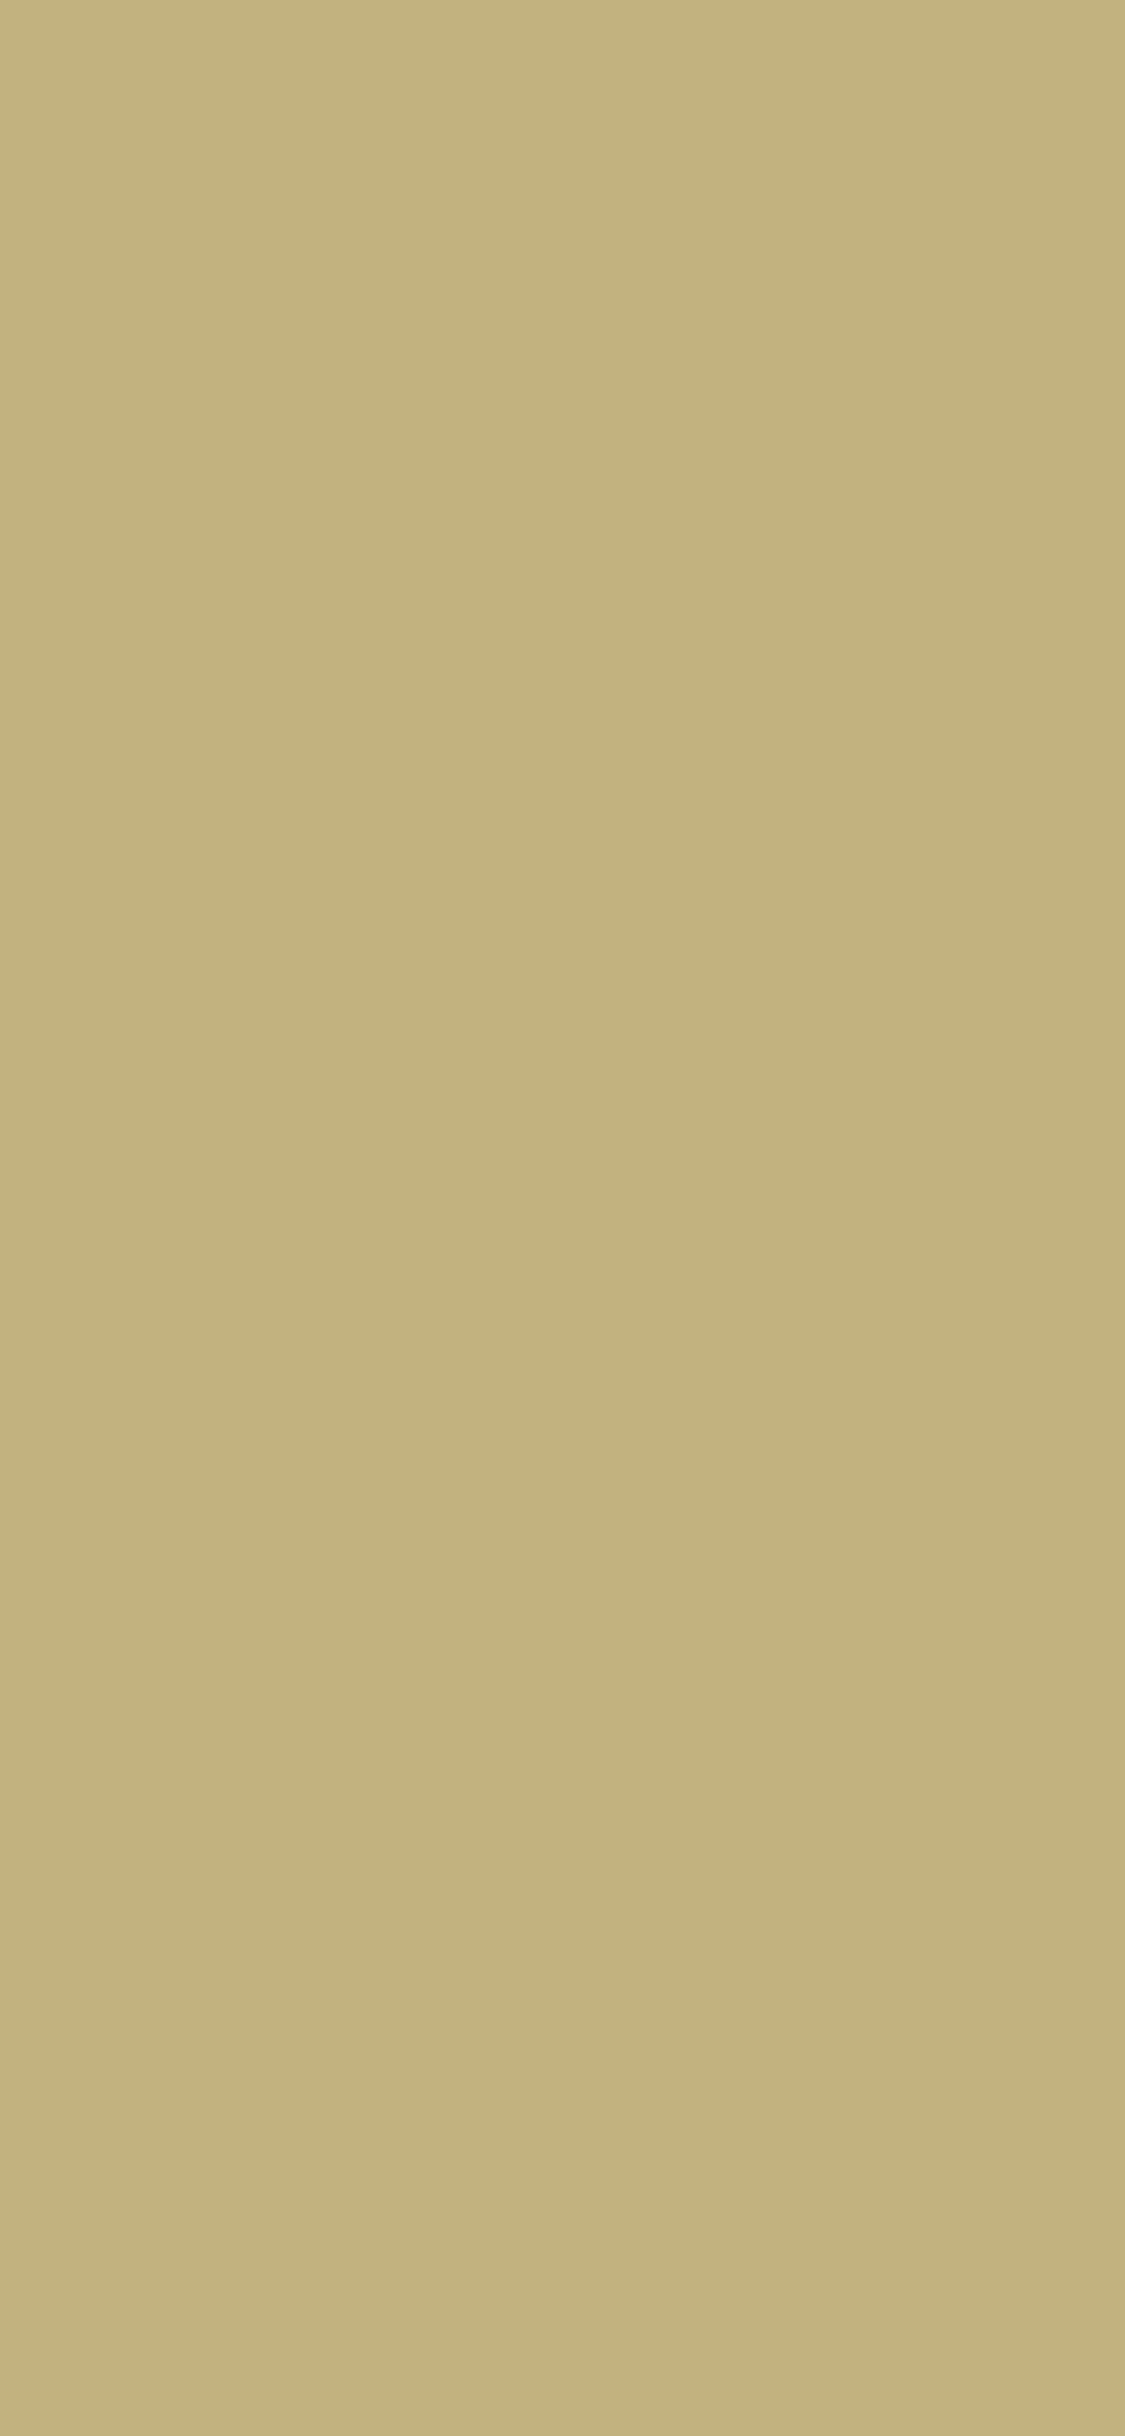 1125x2436 Sand Solid Color Background